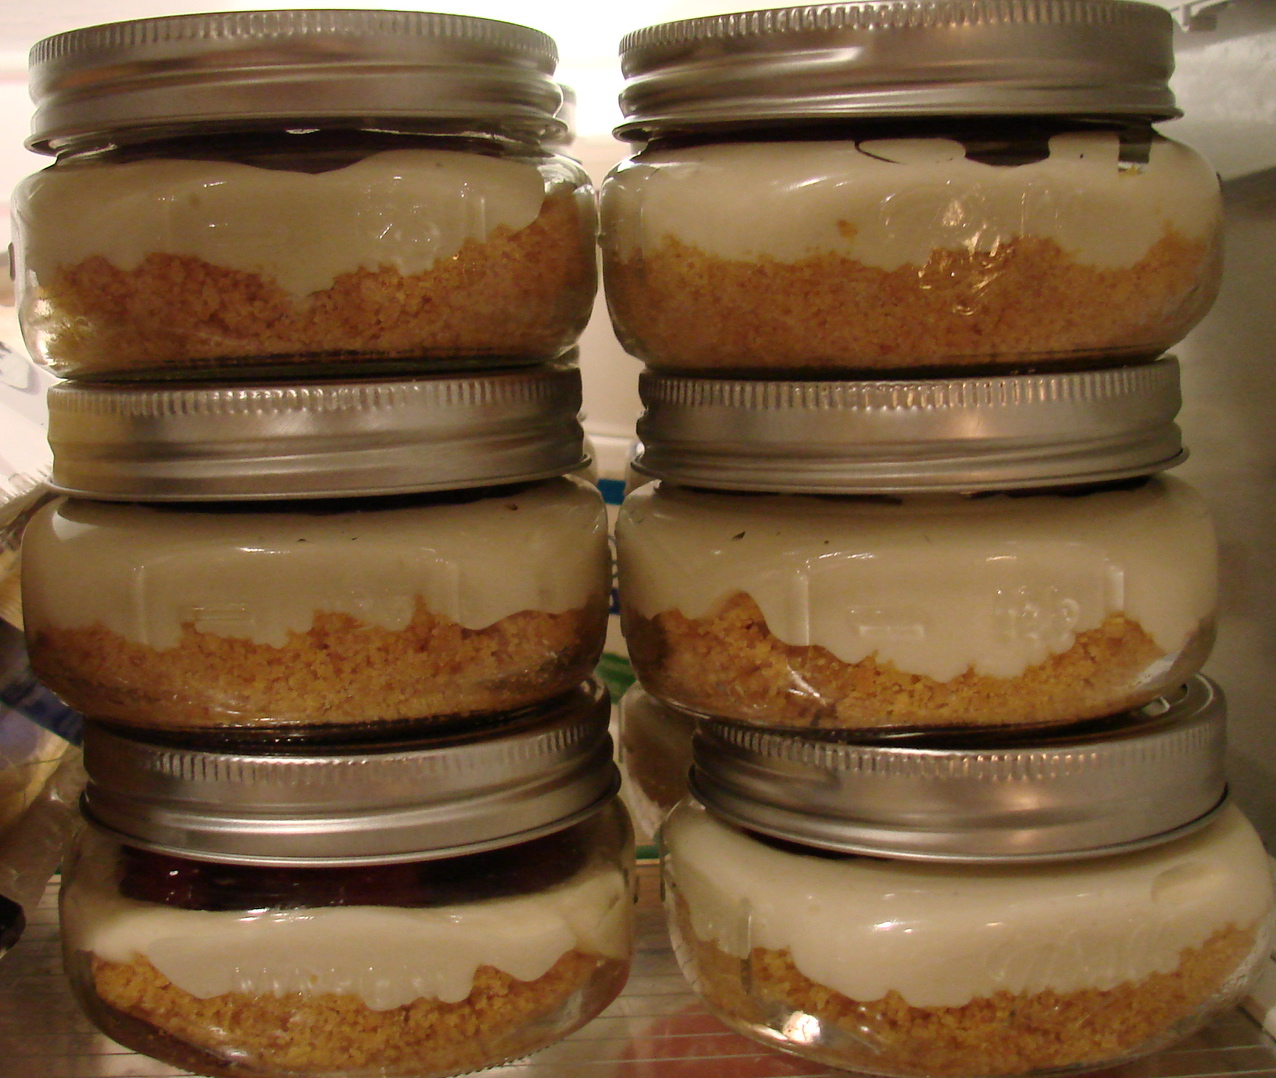 Uncommon Artistic Endeavors: Cheesecake in a Jar